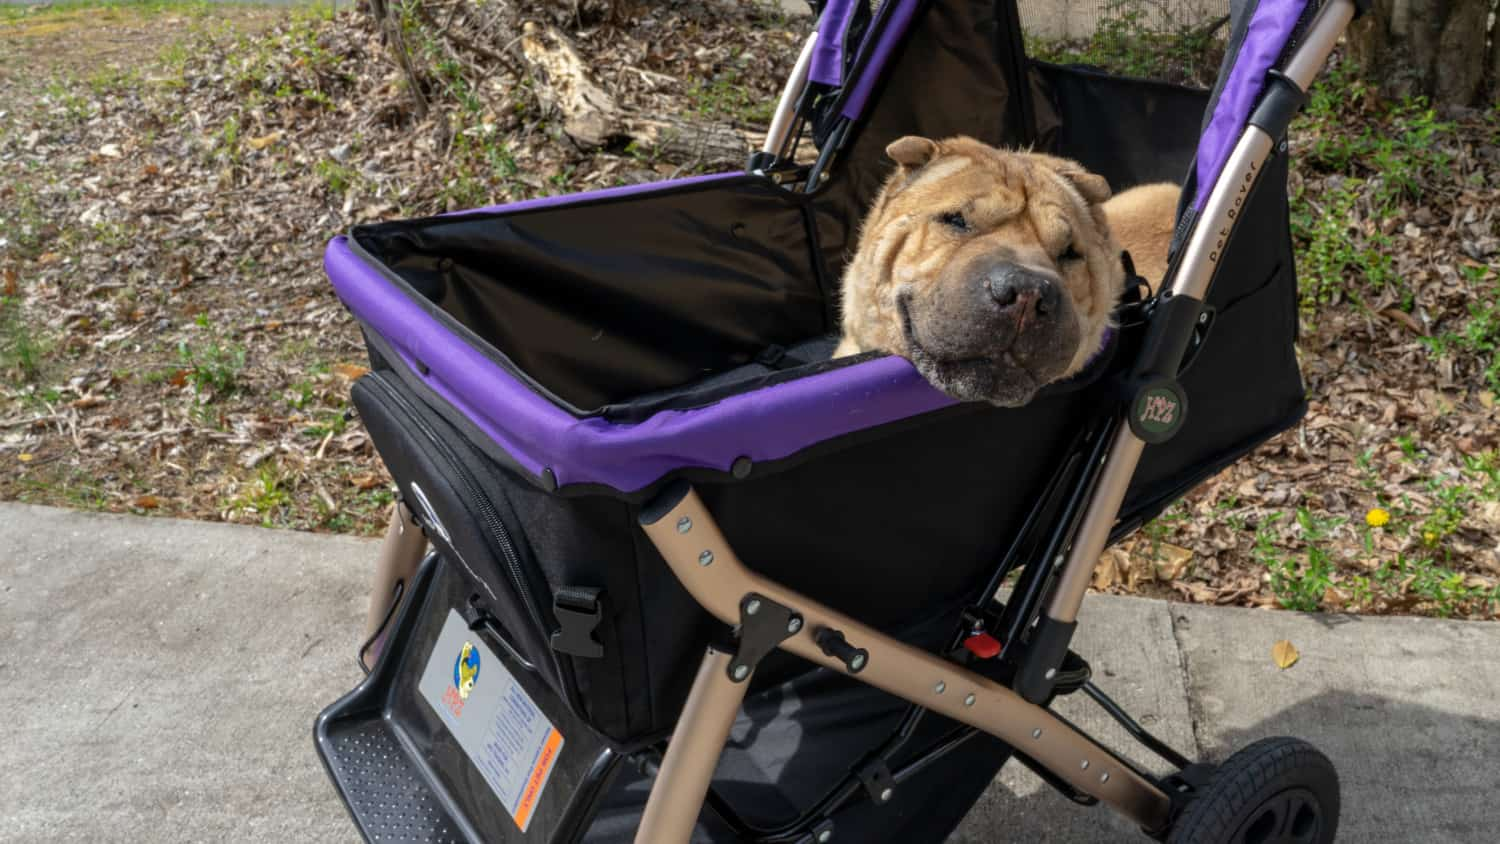 Ty the Shar-pei riding in the purple Pet Rover XL dog stroller